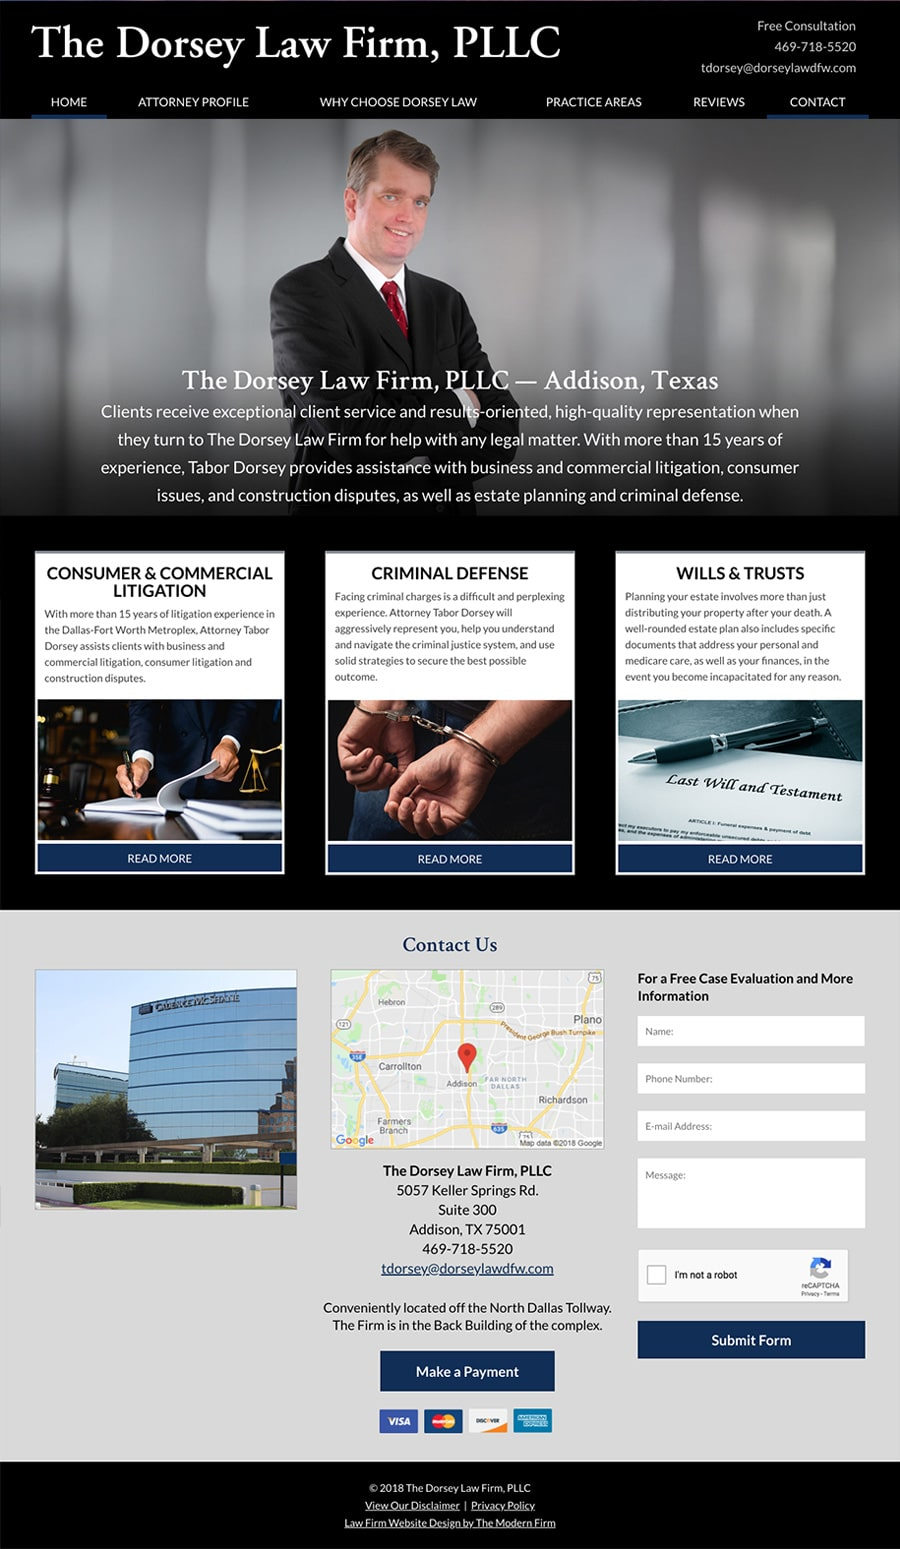 Law Firm Website for The Dorsey Law Firm, PLLC